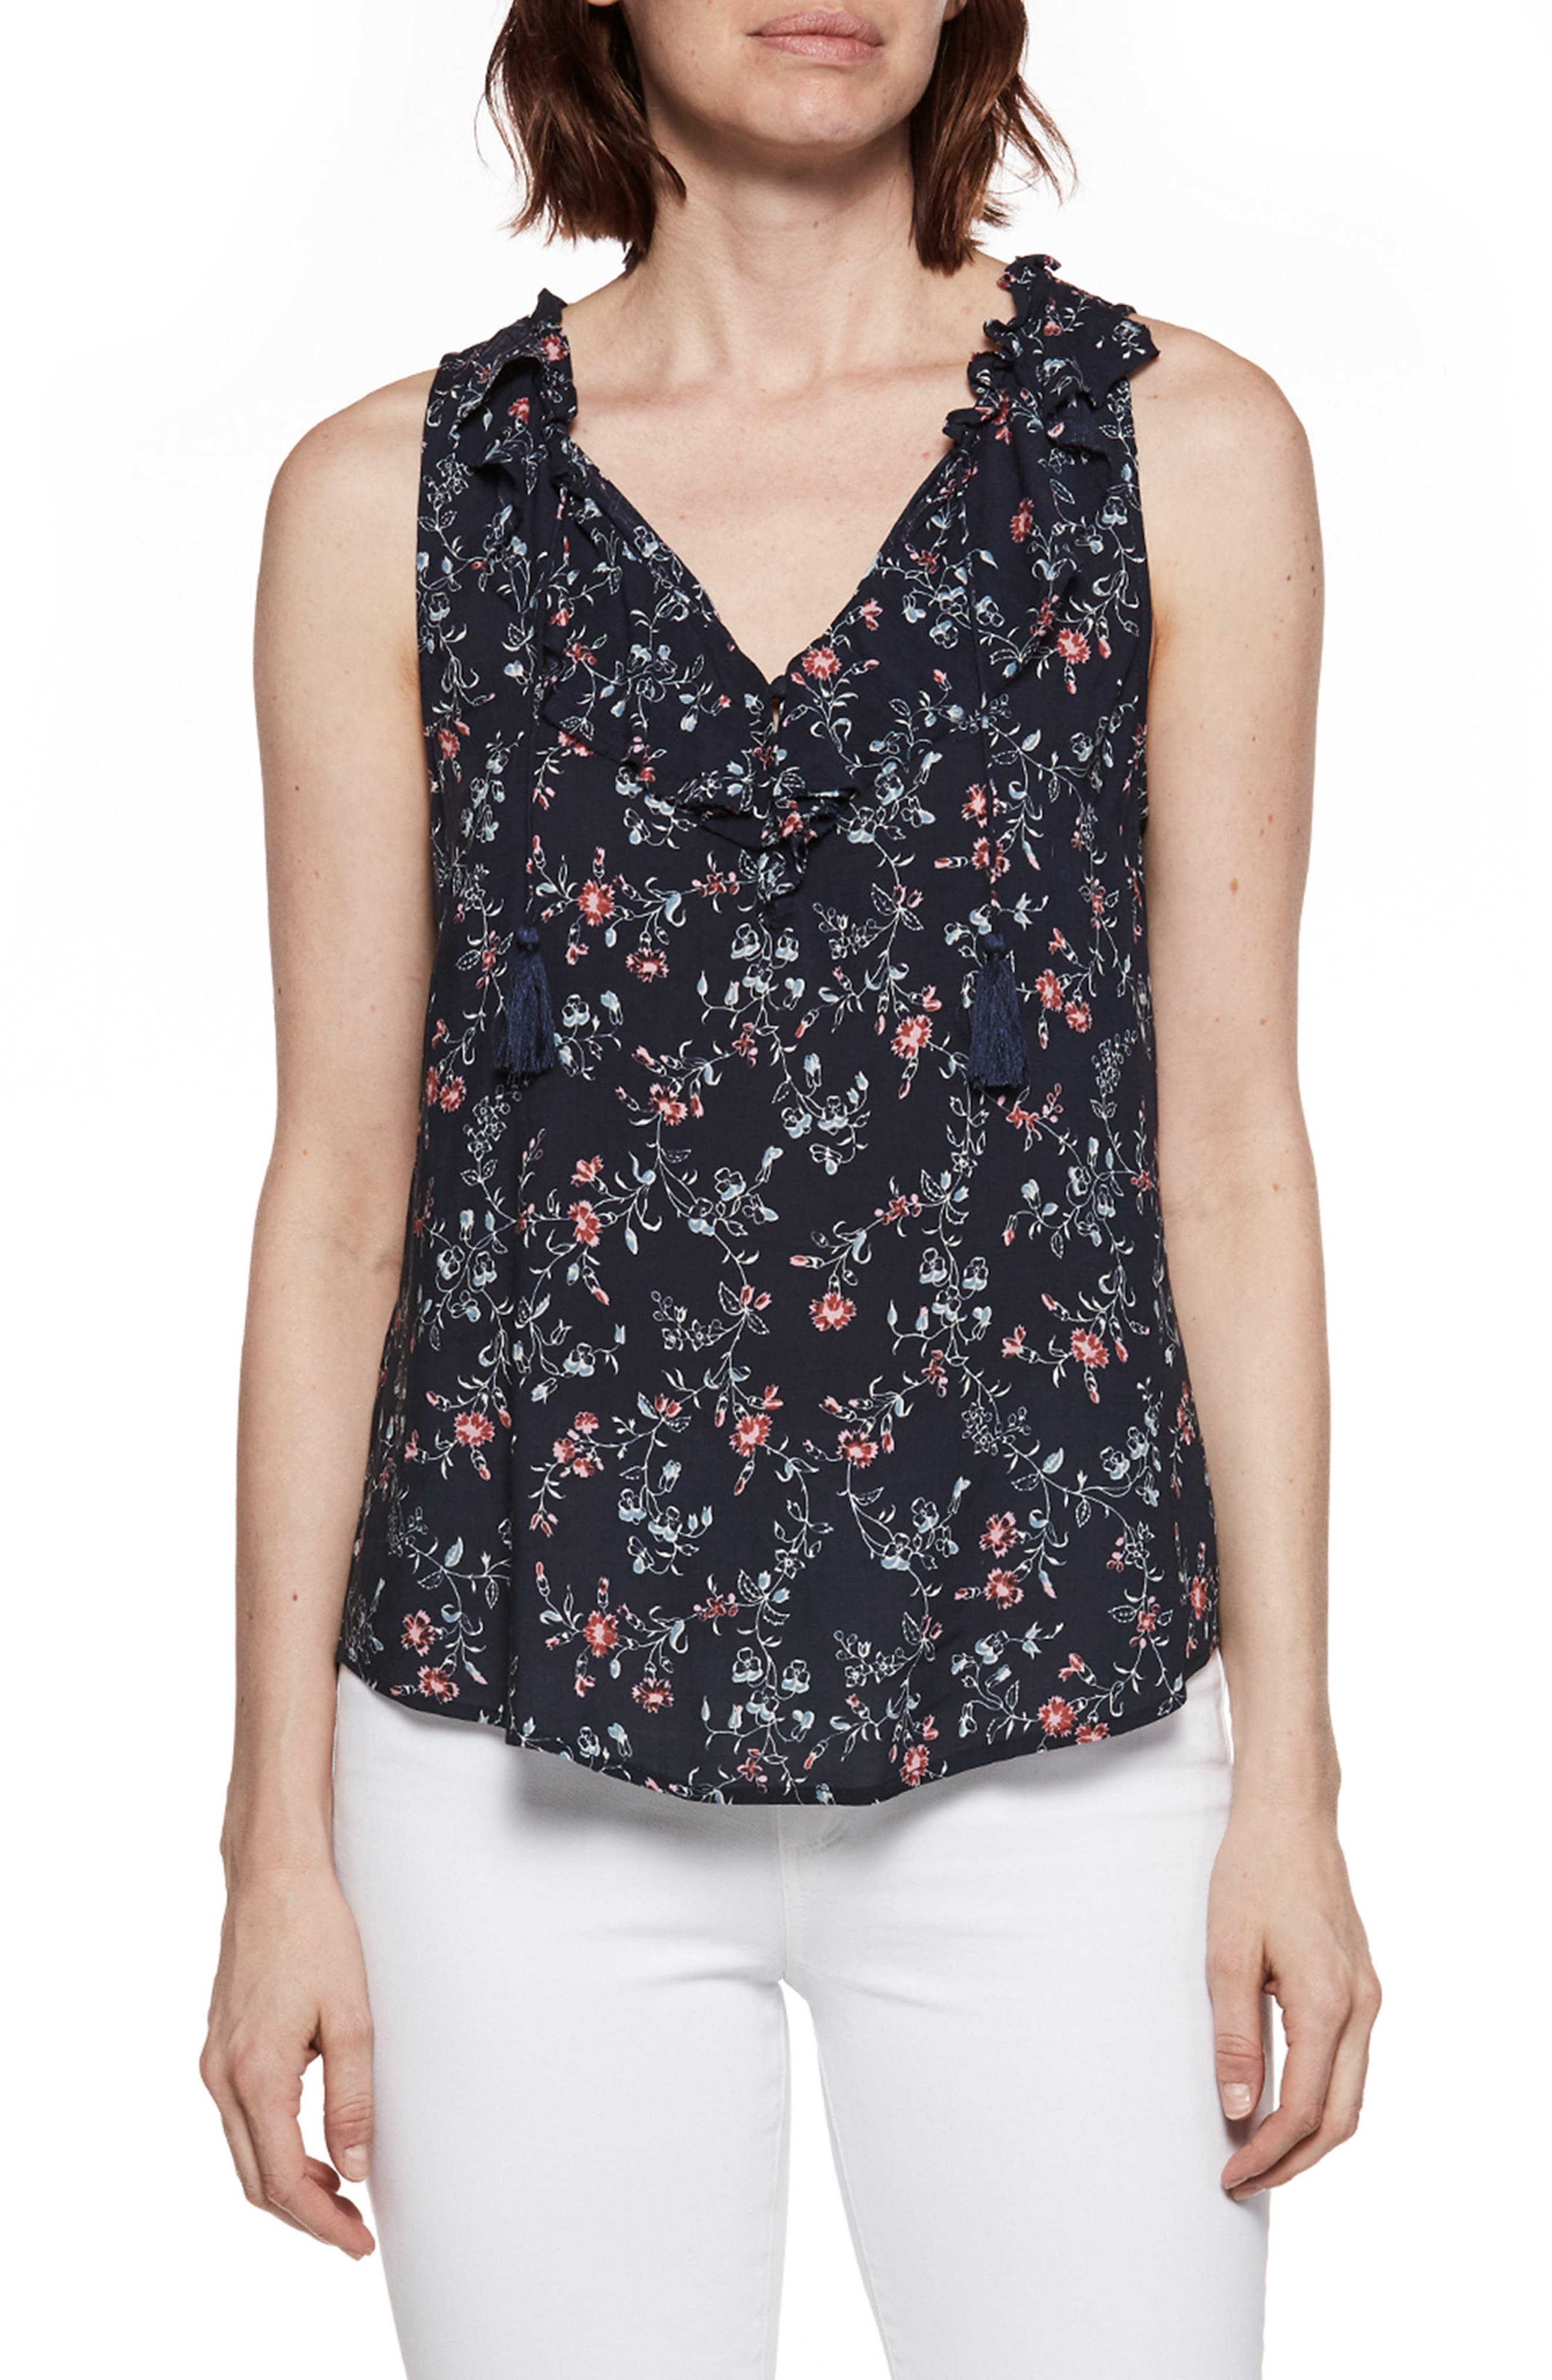 Paletta Floral Print Top,                         Main,                         color, Dark Ink Blue/Primrose Floral